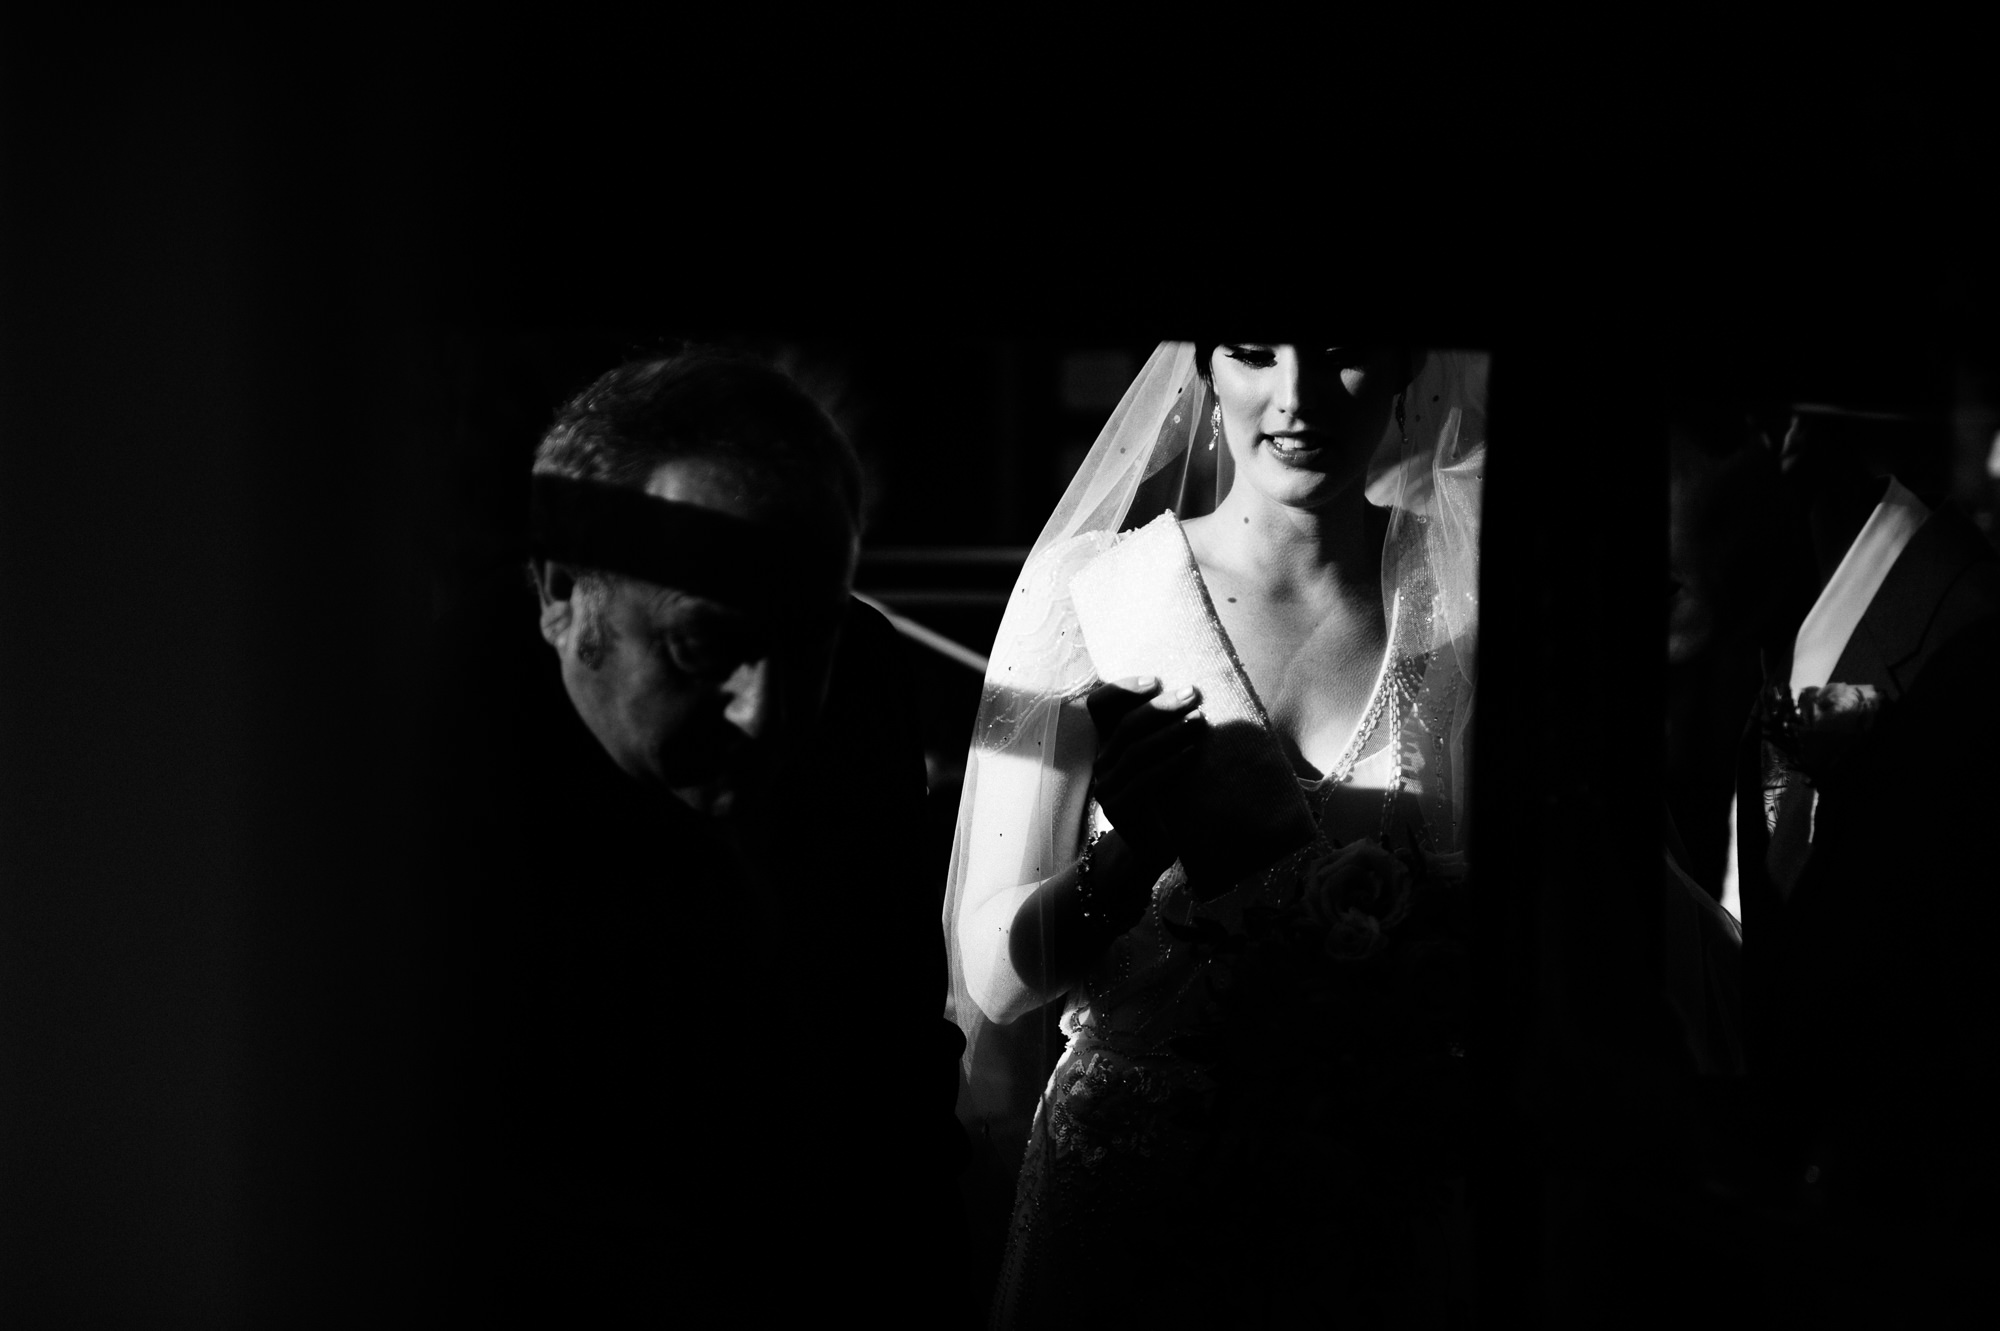 black-and-white-wedding-photography-55